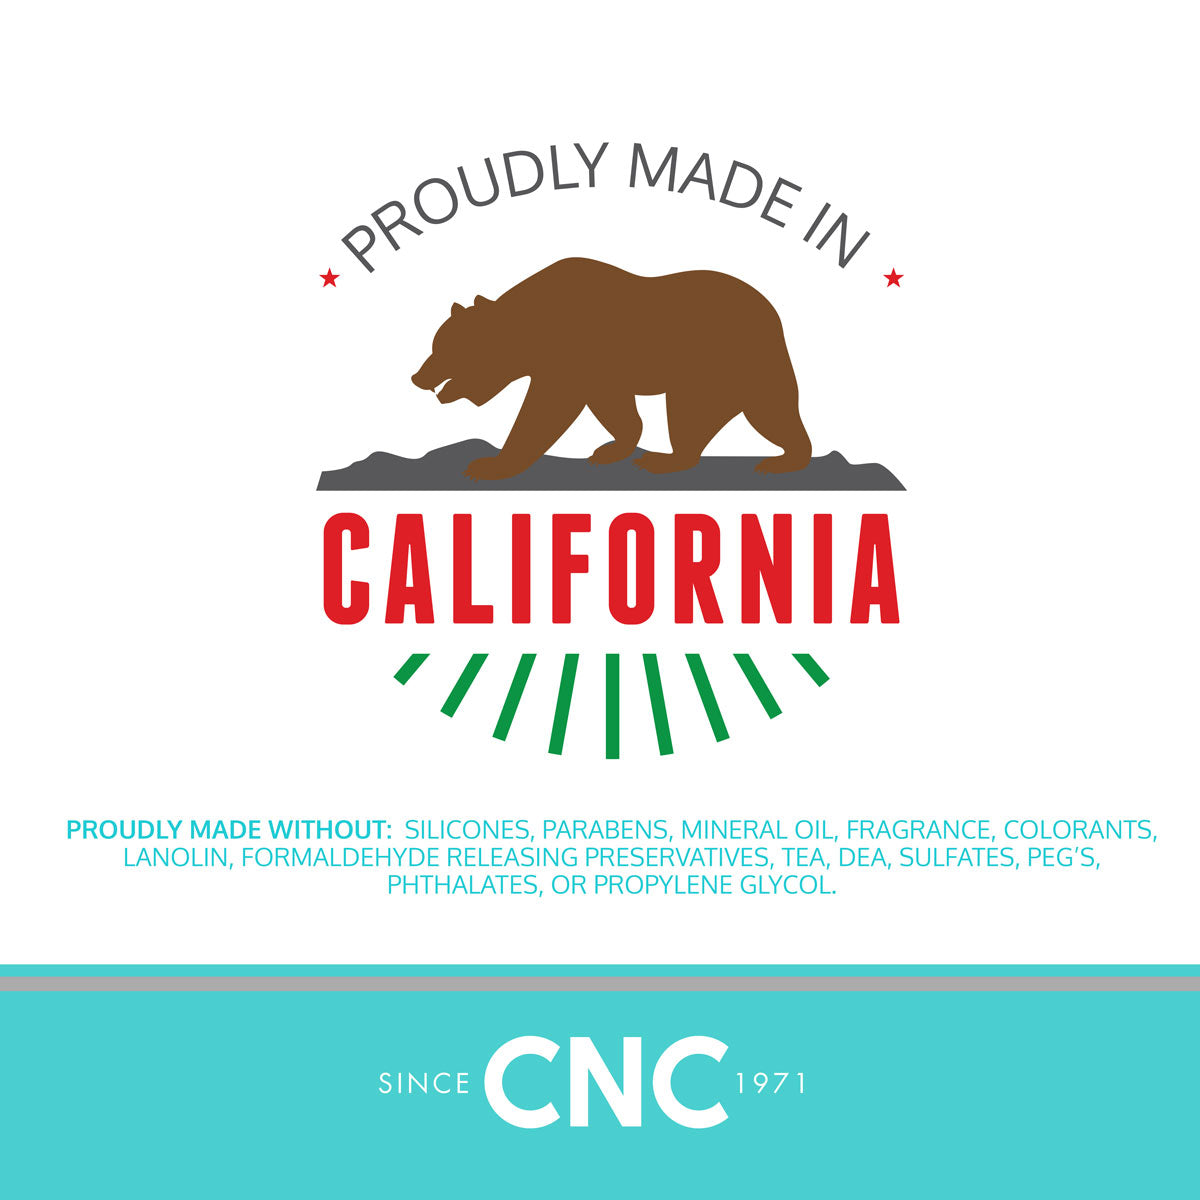 CNC botanics Proudly Made in California